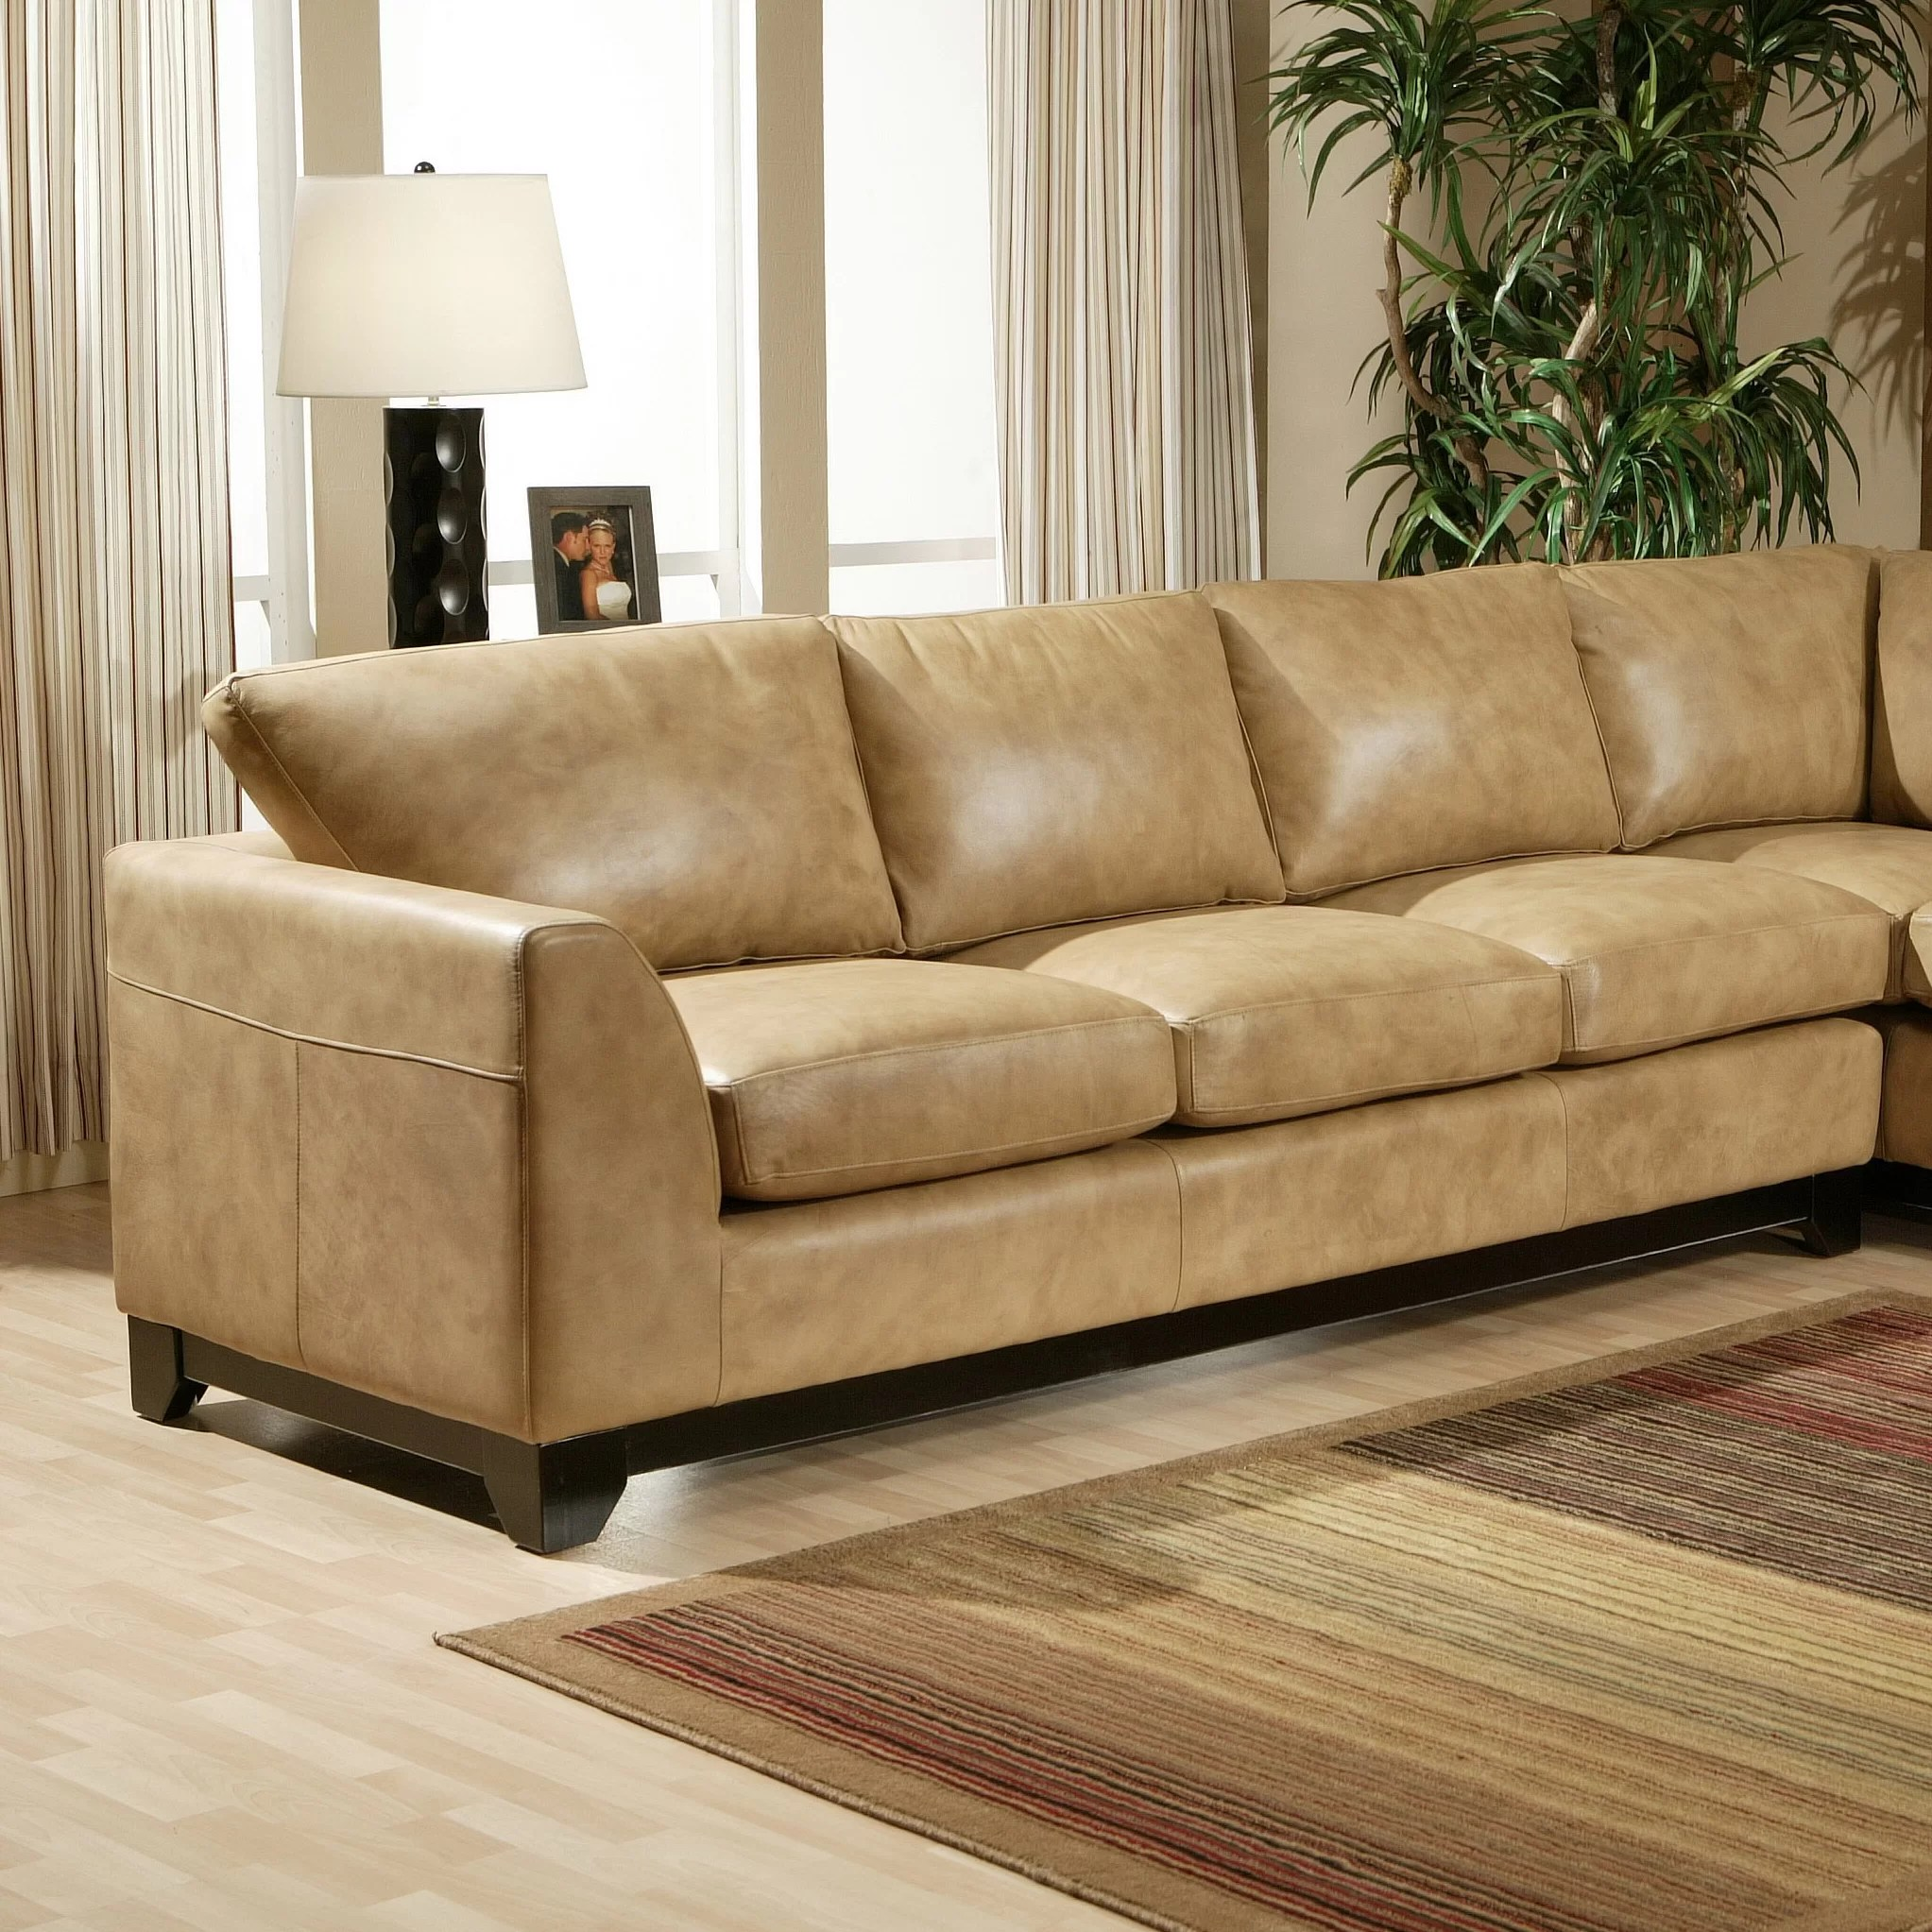 Sleek Leather Couch Omnia Leather City Sleek Leather Sofa Wayfair